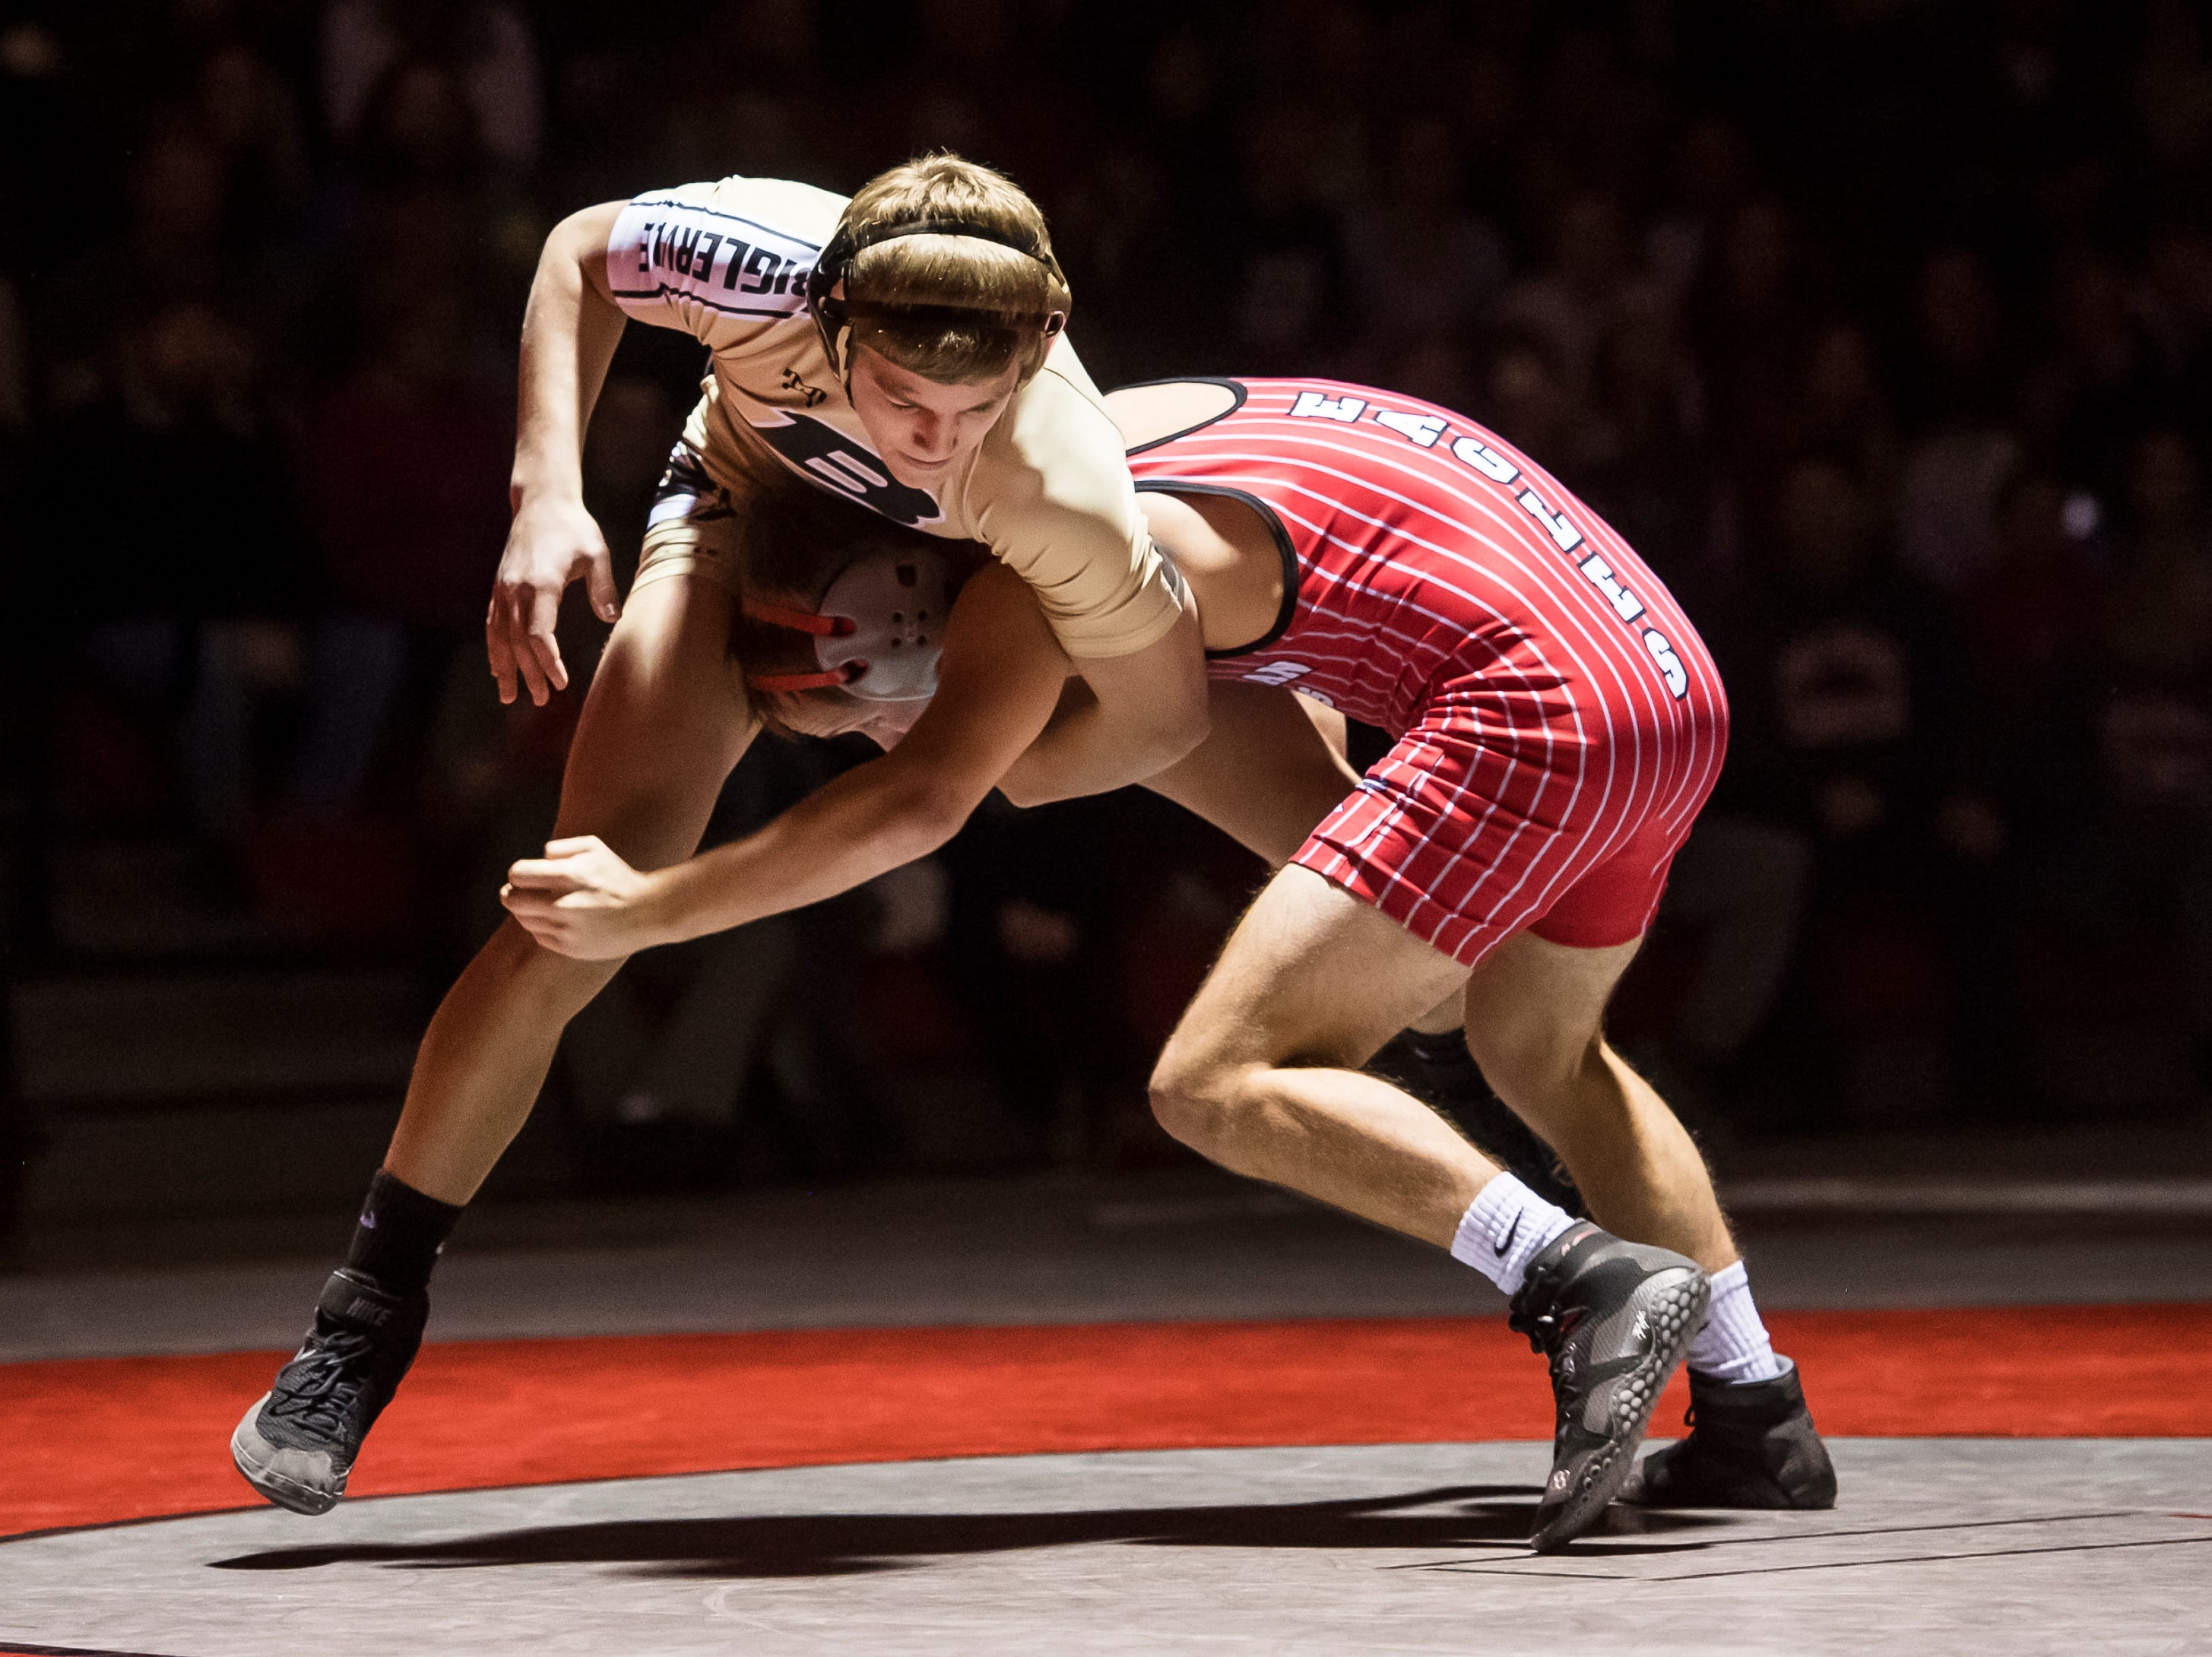 Biglerville's Blake Showers, top, wrestles Bermudian Springs' Korey Smith in the 120-pound bout at Bermudian Springs High School on December 13, 2018. Showers won by fall in the first period but the Eagles won the duel 51-27.